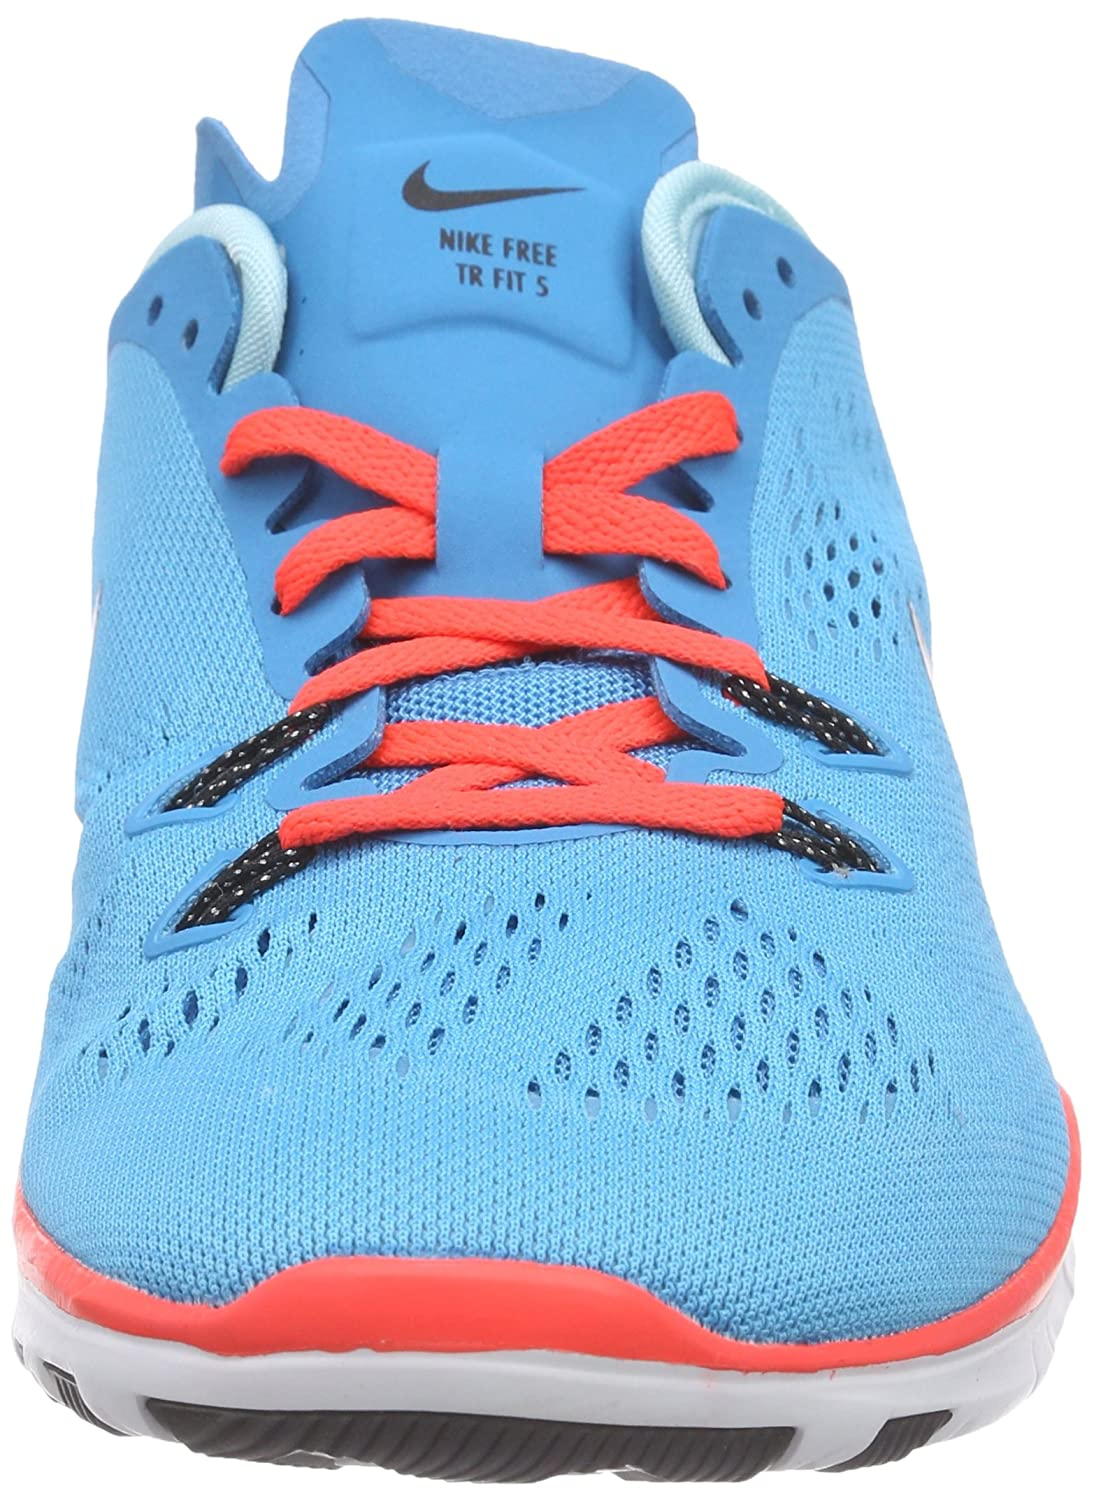 d122cab7b6491 Nike Women s Free Tr 5.0 Fit 5 Multisport Indoor Shoes  Amazon.co.uk  Shoes    Bags